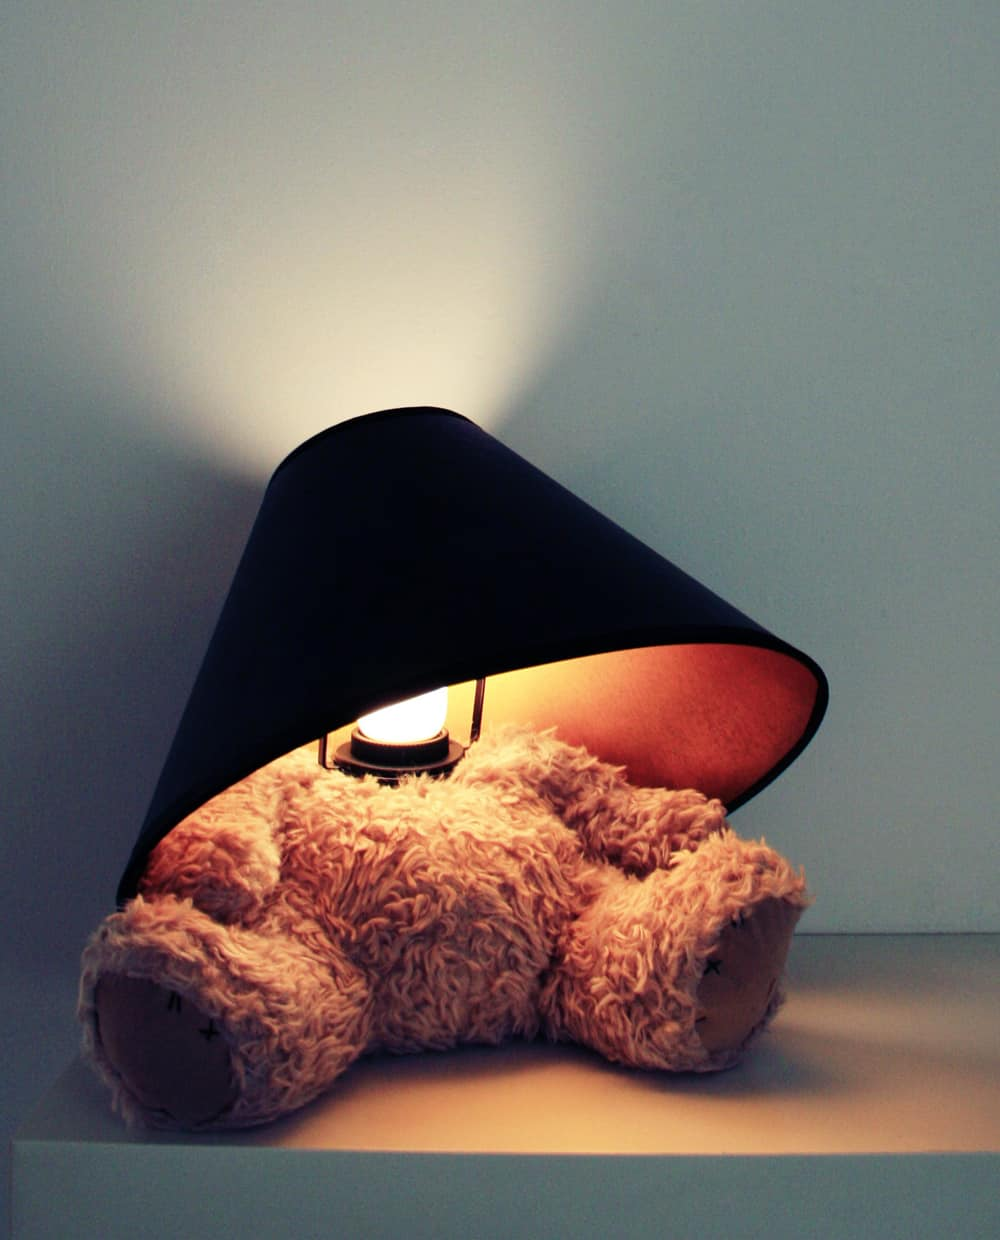 Teddy bear and lamp in one.